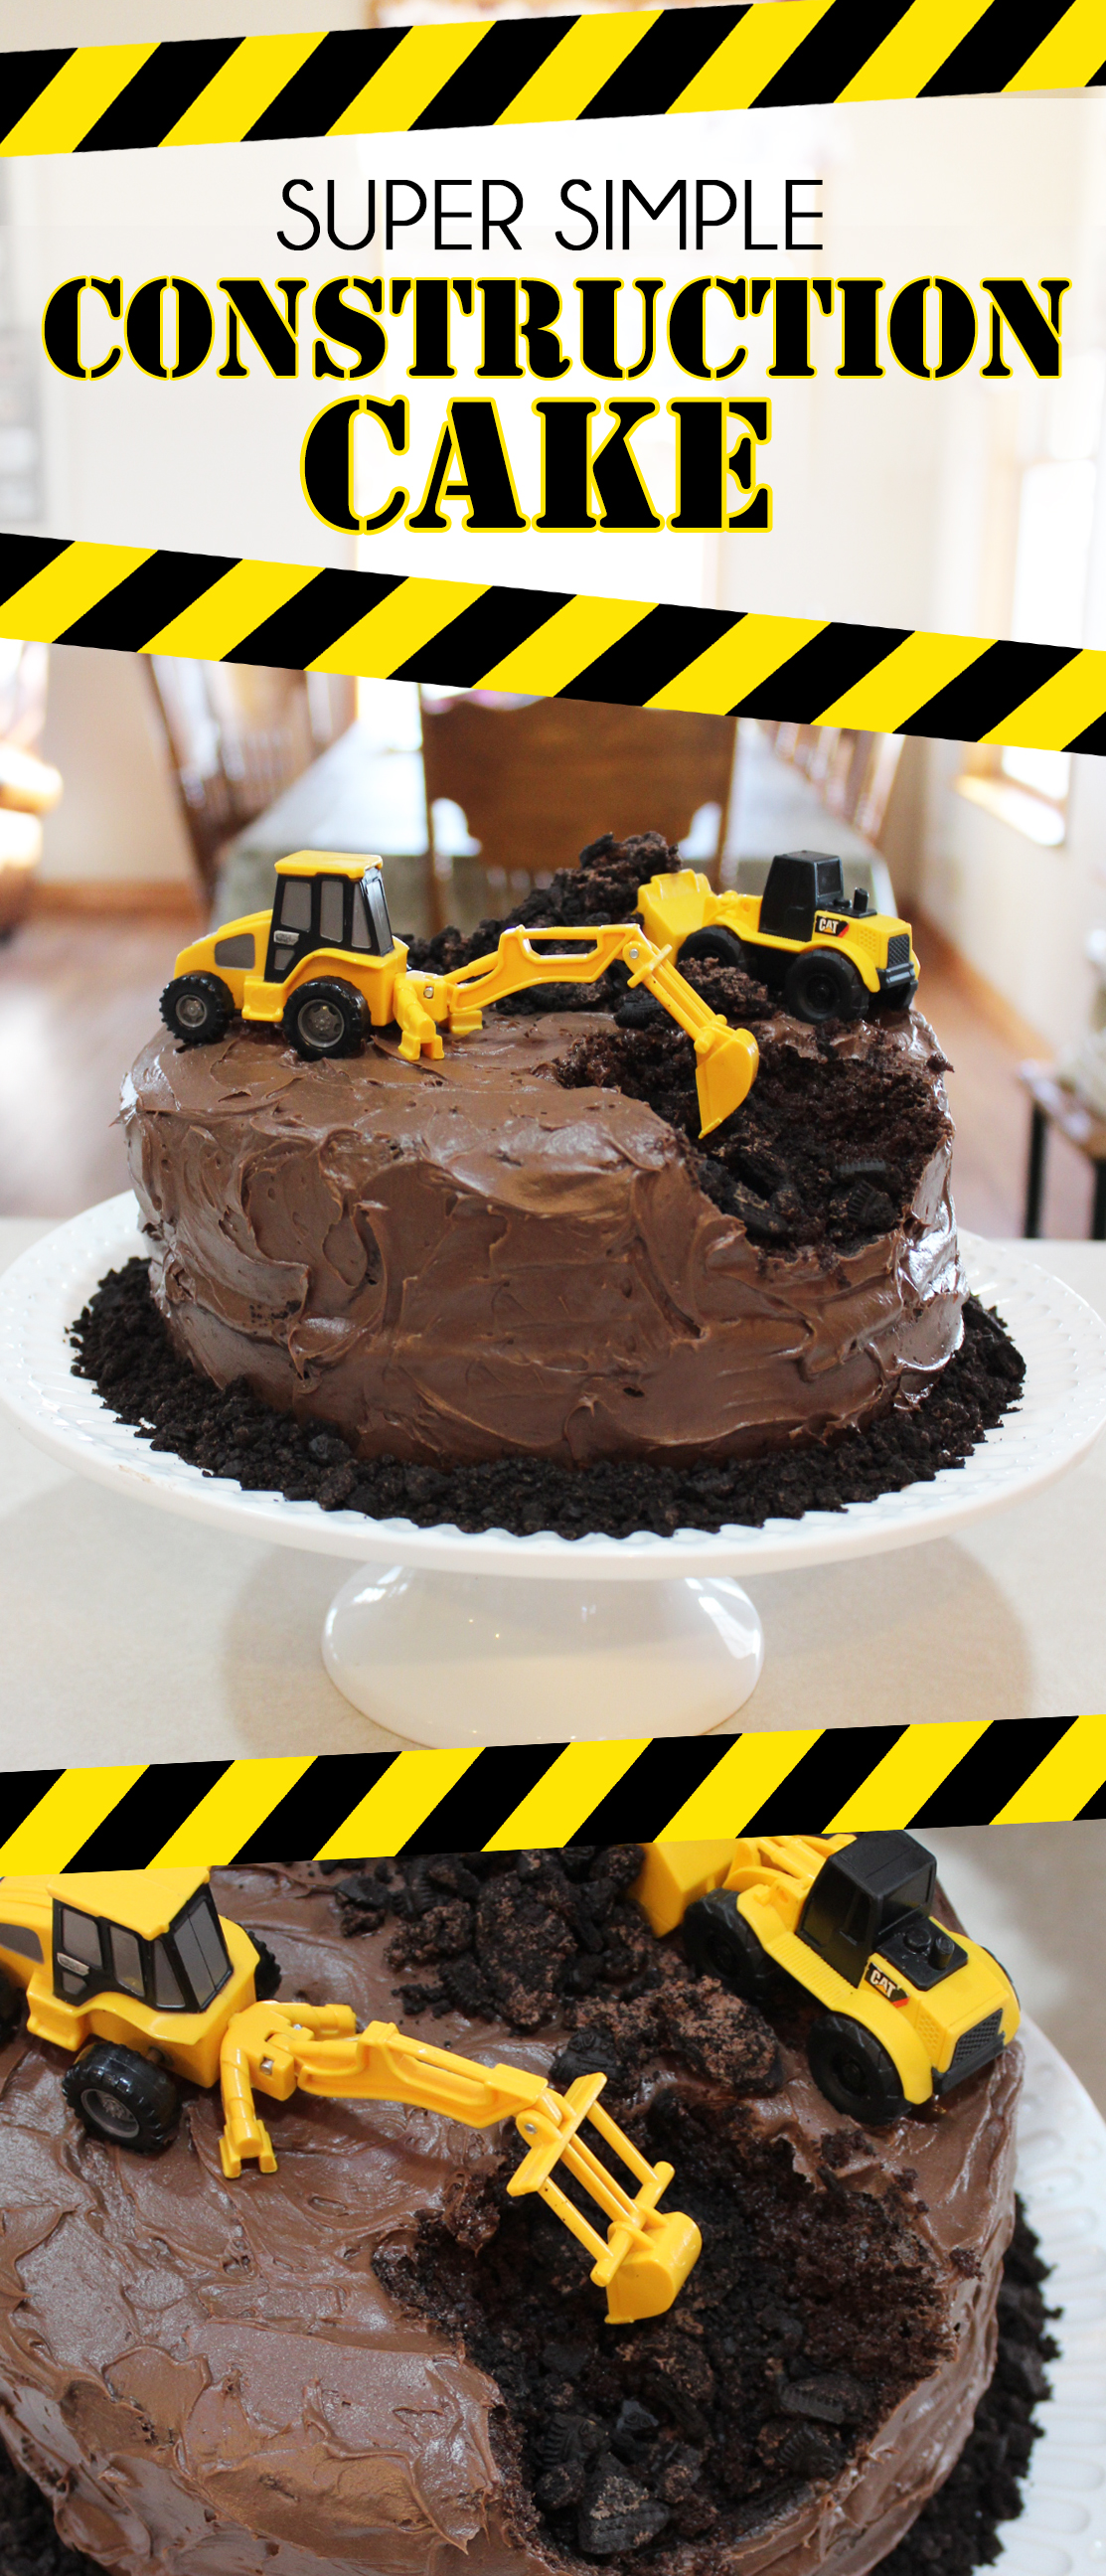 Super Simple Construction Themed Birthday Cake